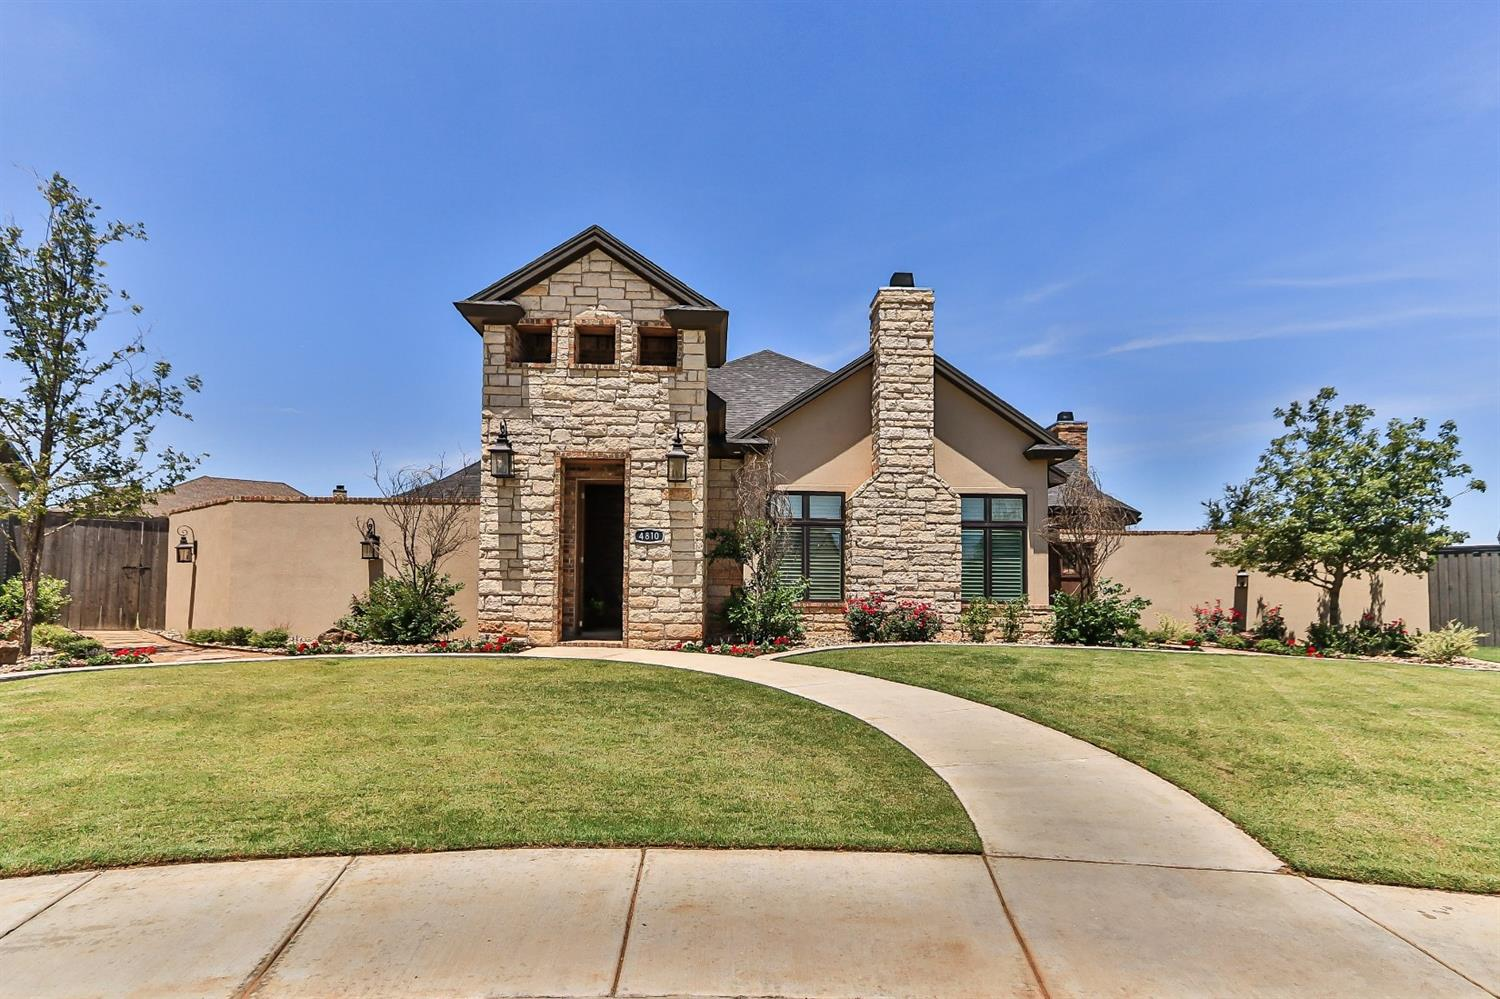 Stunning 2017 Parade Home in The Estates at Vintage! The 10+ curb appeal is just the beginning of the many incredible features this 4/3/3 with Bonus Room offers.Character abounds as you enter the private courtyard w/ fountain and sitting area.The soaring ceilings with beautiful beams will greet you as you enter the home. The spacious kitchen boasts double ovens, buffet serving area, large island, stainless farmhouse sink, and GE Profile Gas cooktop. The cozy hearth room just off the kitchen area is the perfect spot for your morning coffee. Enjoy the open concept living/dining/kitchen which make this home a great choice for entertaining. The enclosed patio with cooking area, sitting area, and fireplace with gas logs is a great option for buyers who love a game room, a second living space or man cave! The master bedroom is a retreat with a private patio and spa like master bath.Your options are endless for outdoor living with 3 covered patios and two backyard spaces!Don't miss this one!